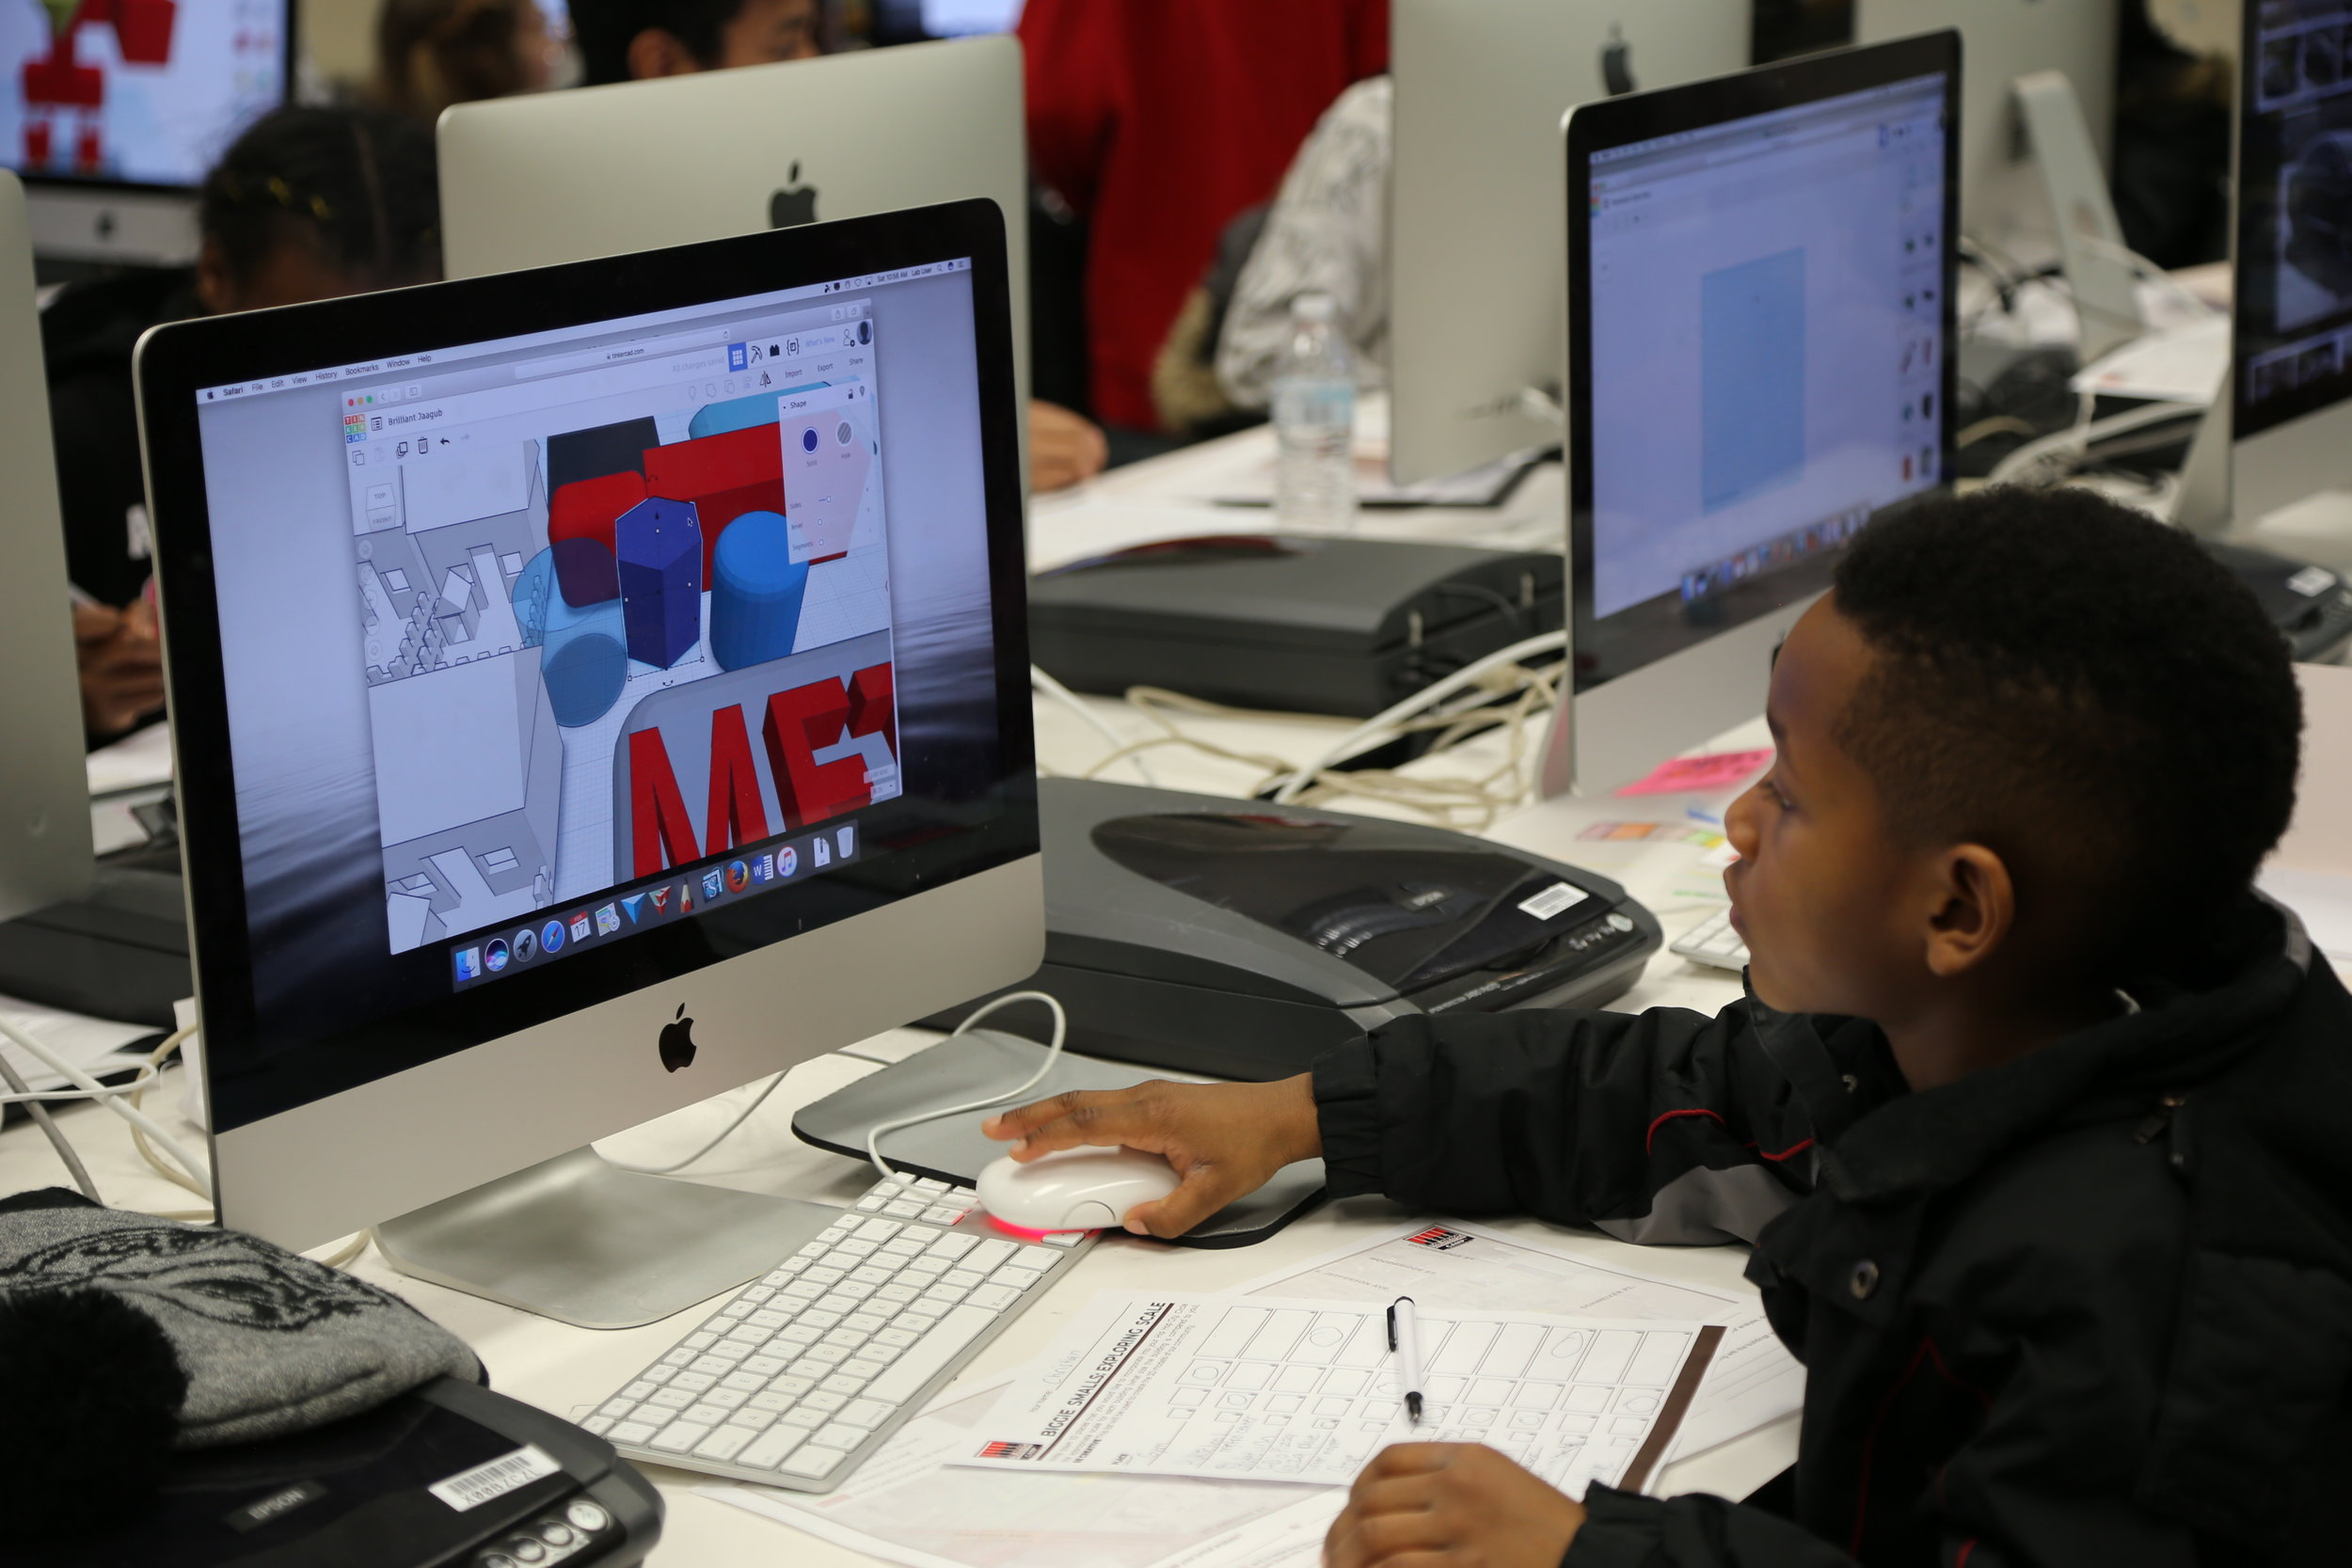 TINKERING AROUND Christian Adams, 9, uses the design program Tinkercad to imagine a new city ROLANDA MASSEY—HIP HOP ARCHITECTURE